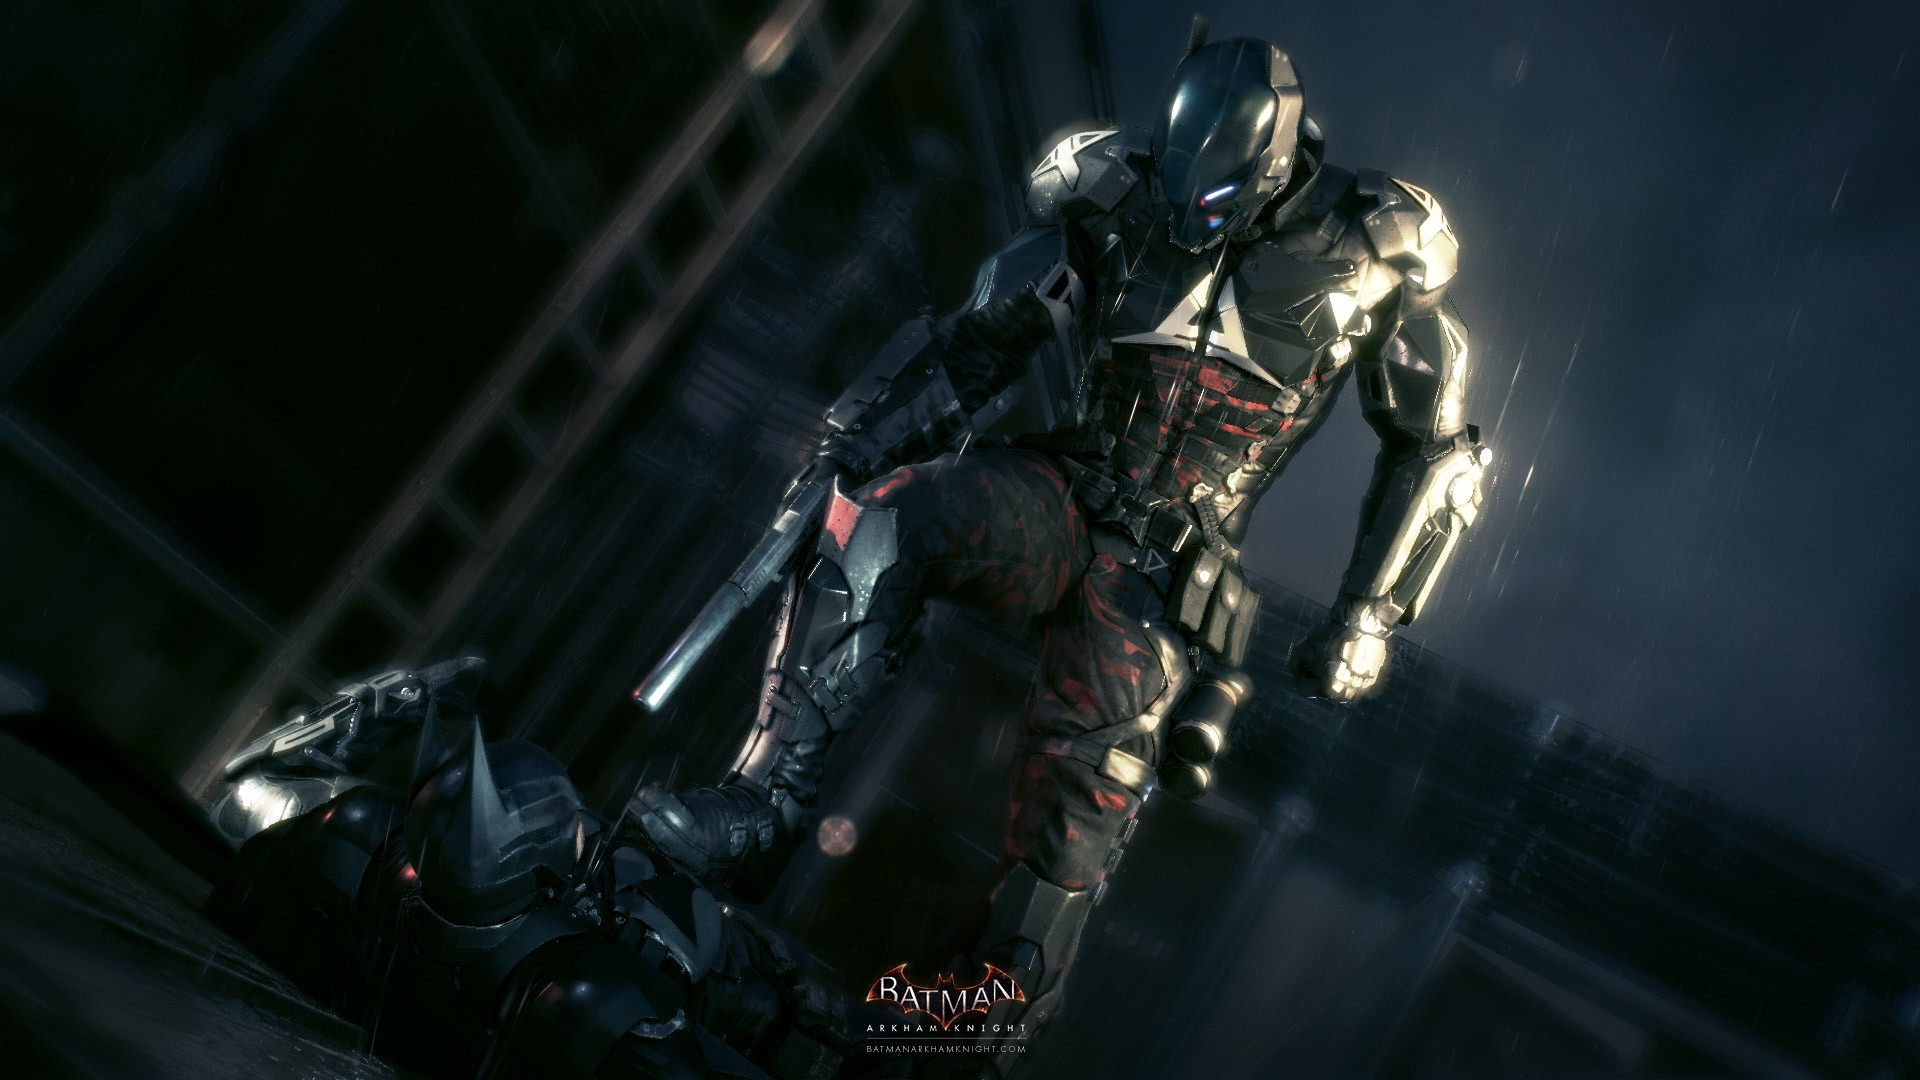 First glimpse of the new Arkham villain, only known as Arkham Knight.